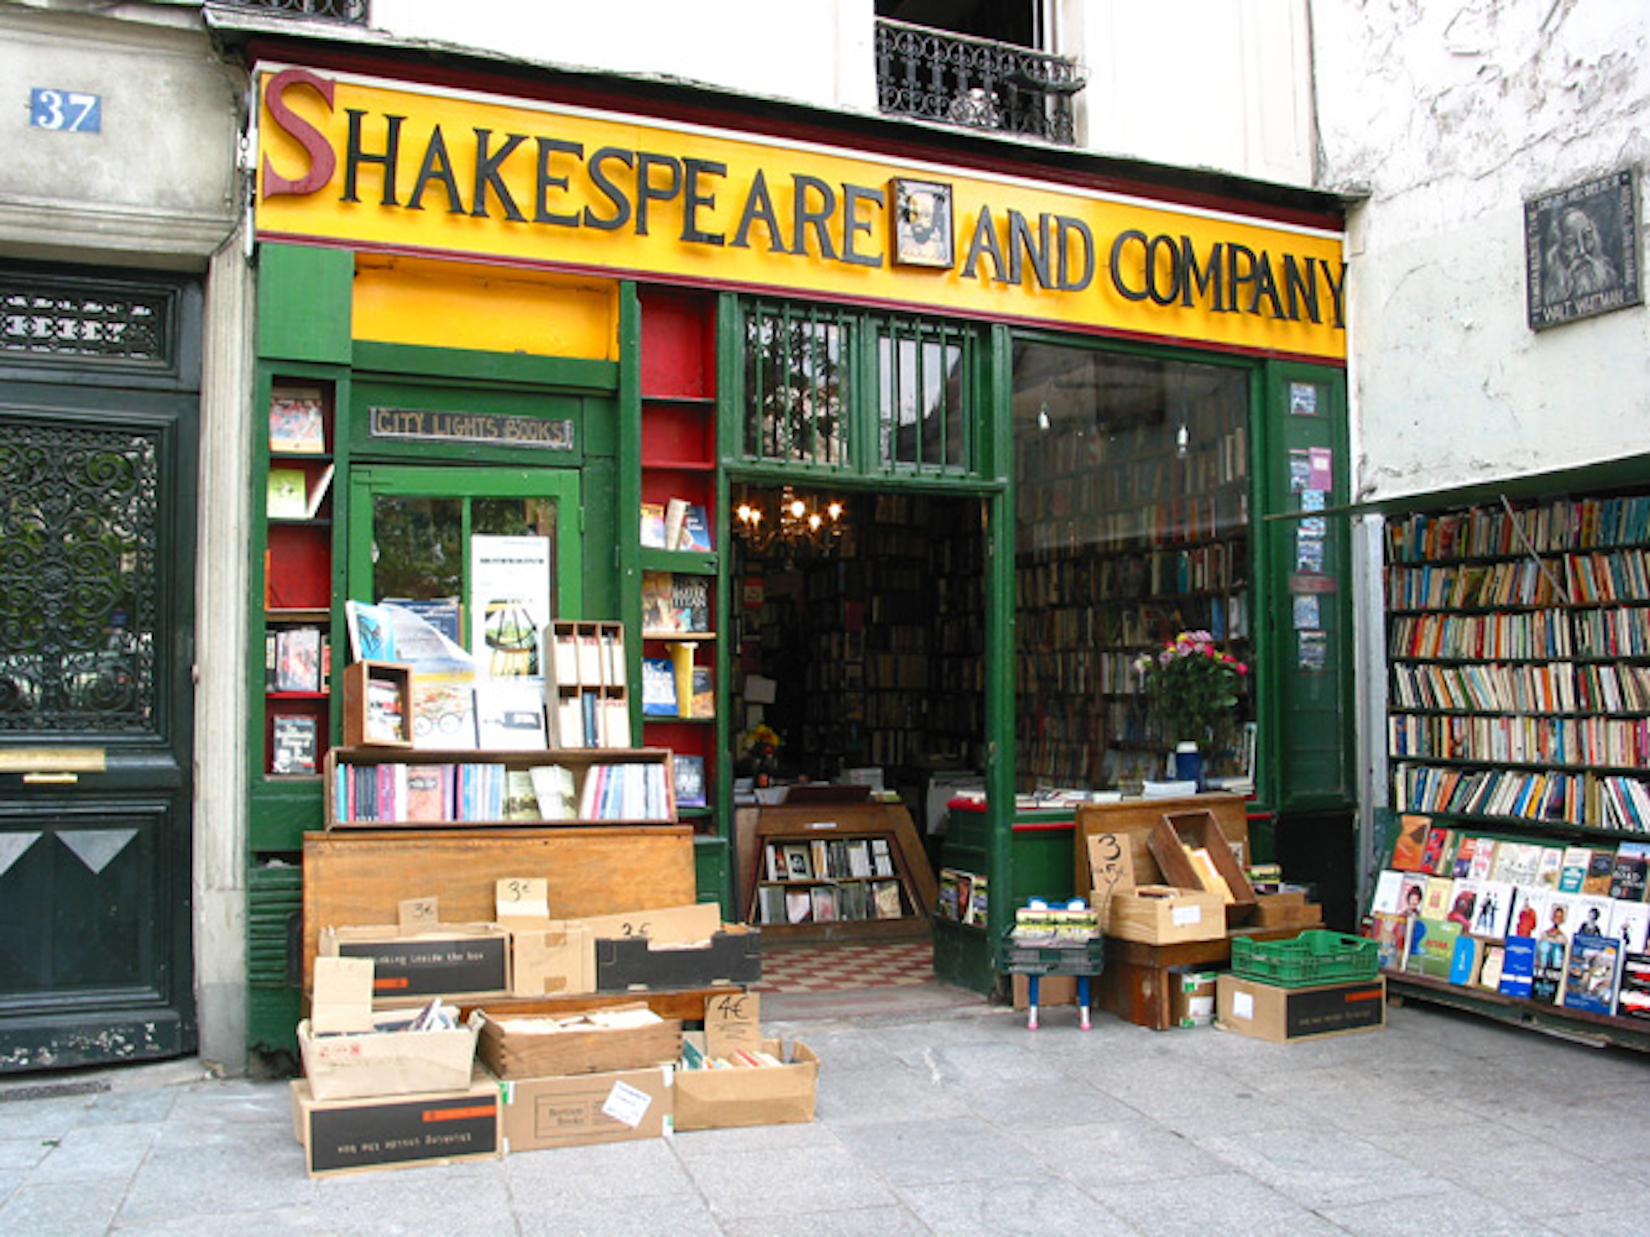 Photo of the storefront of the Shakespeare and Company bookstore in Paris made famous by the Lost Generation of American writers.